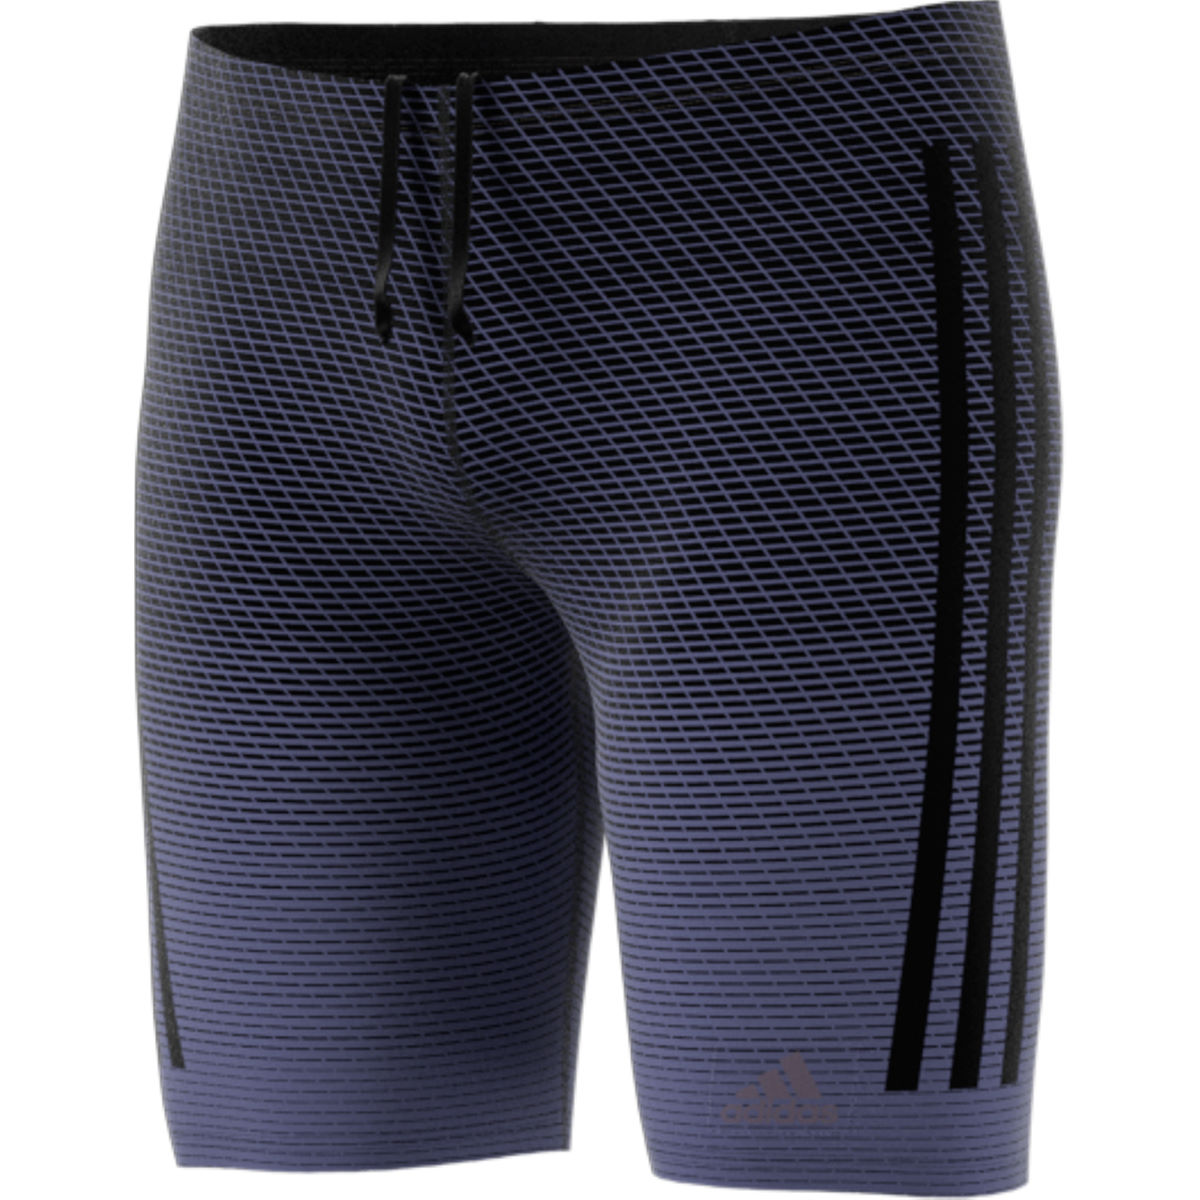 Jammer adidas Performance 3 Stripe (imprimé) - 28'' Raw Indigo/Black